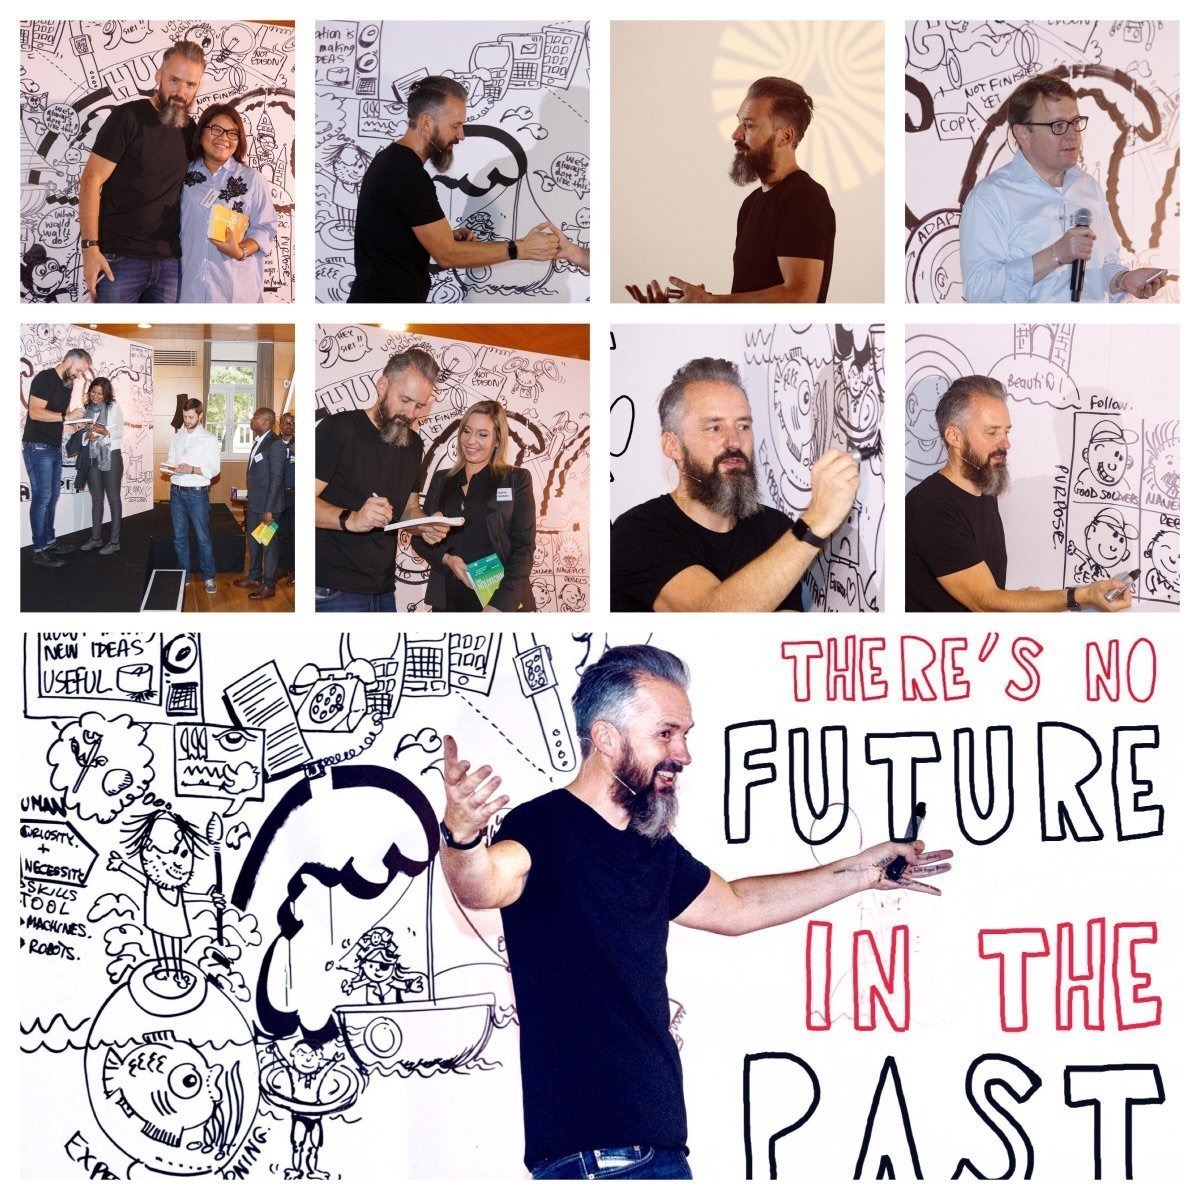 Dr Max has a unique presenting style integrating live art in his presentation